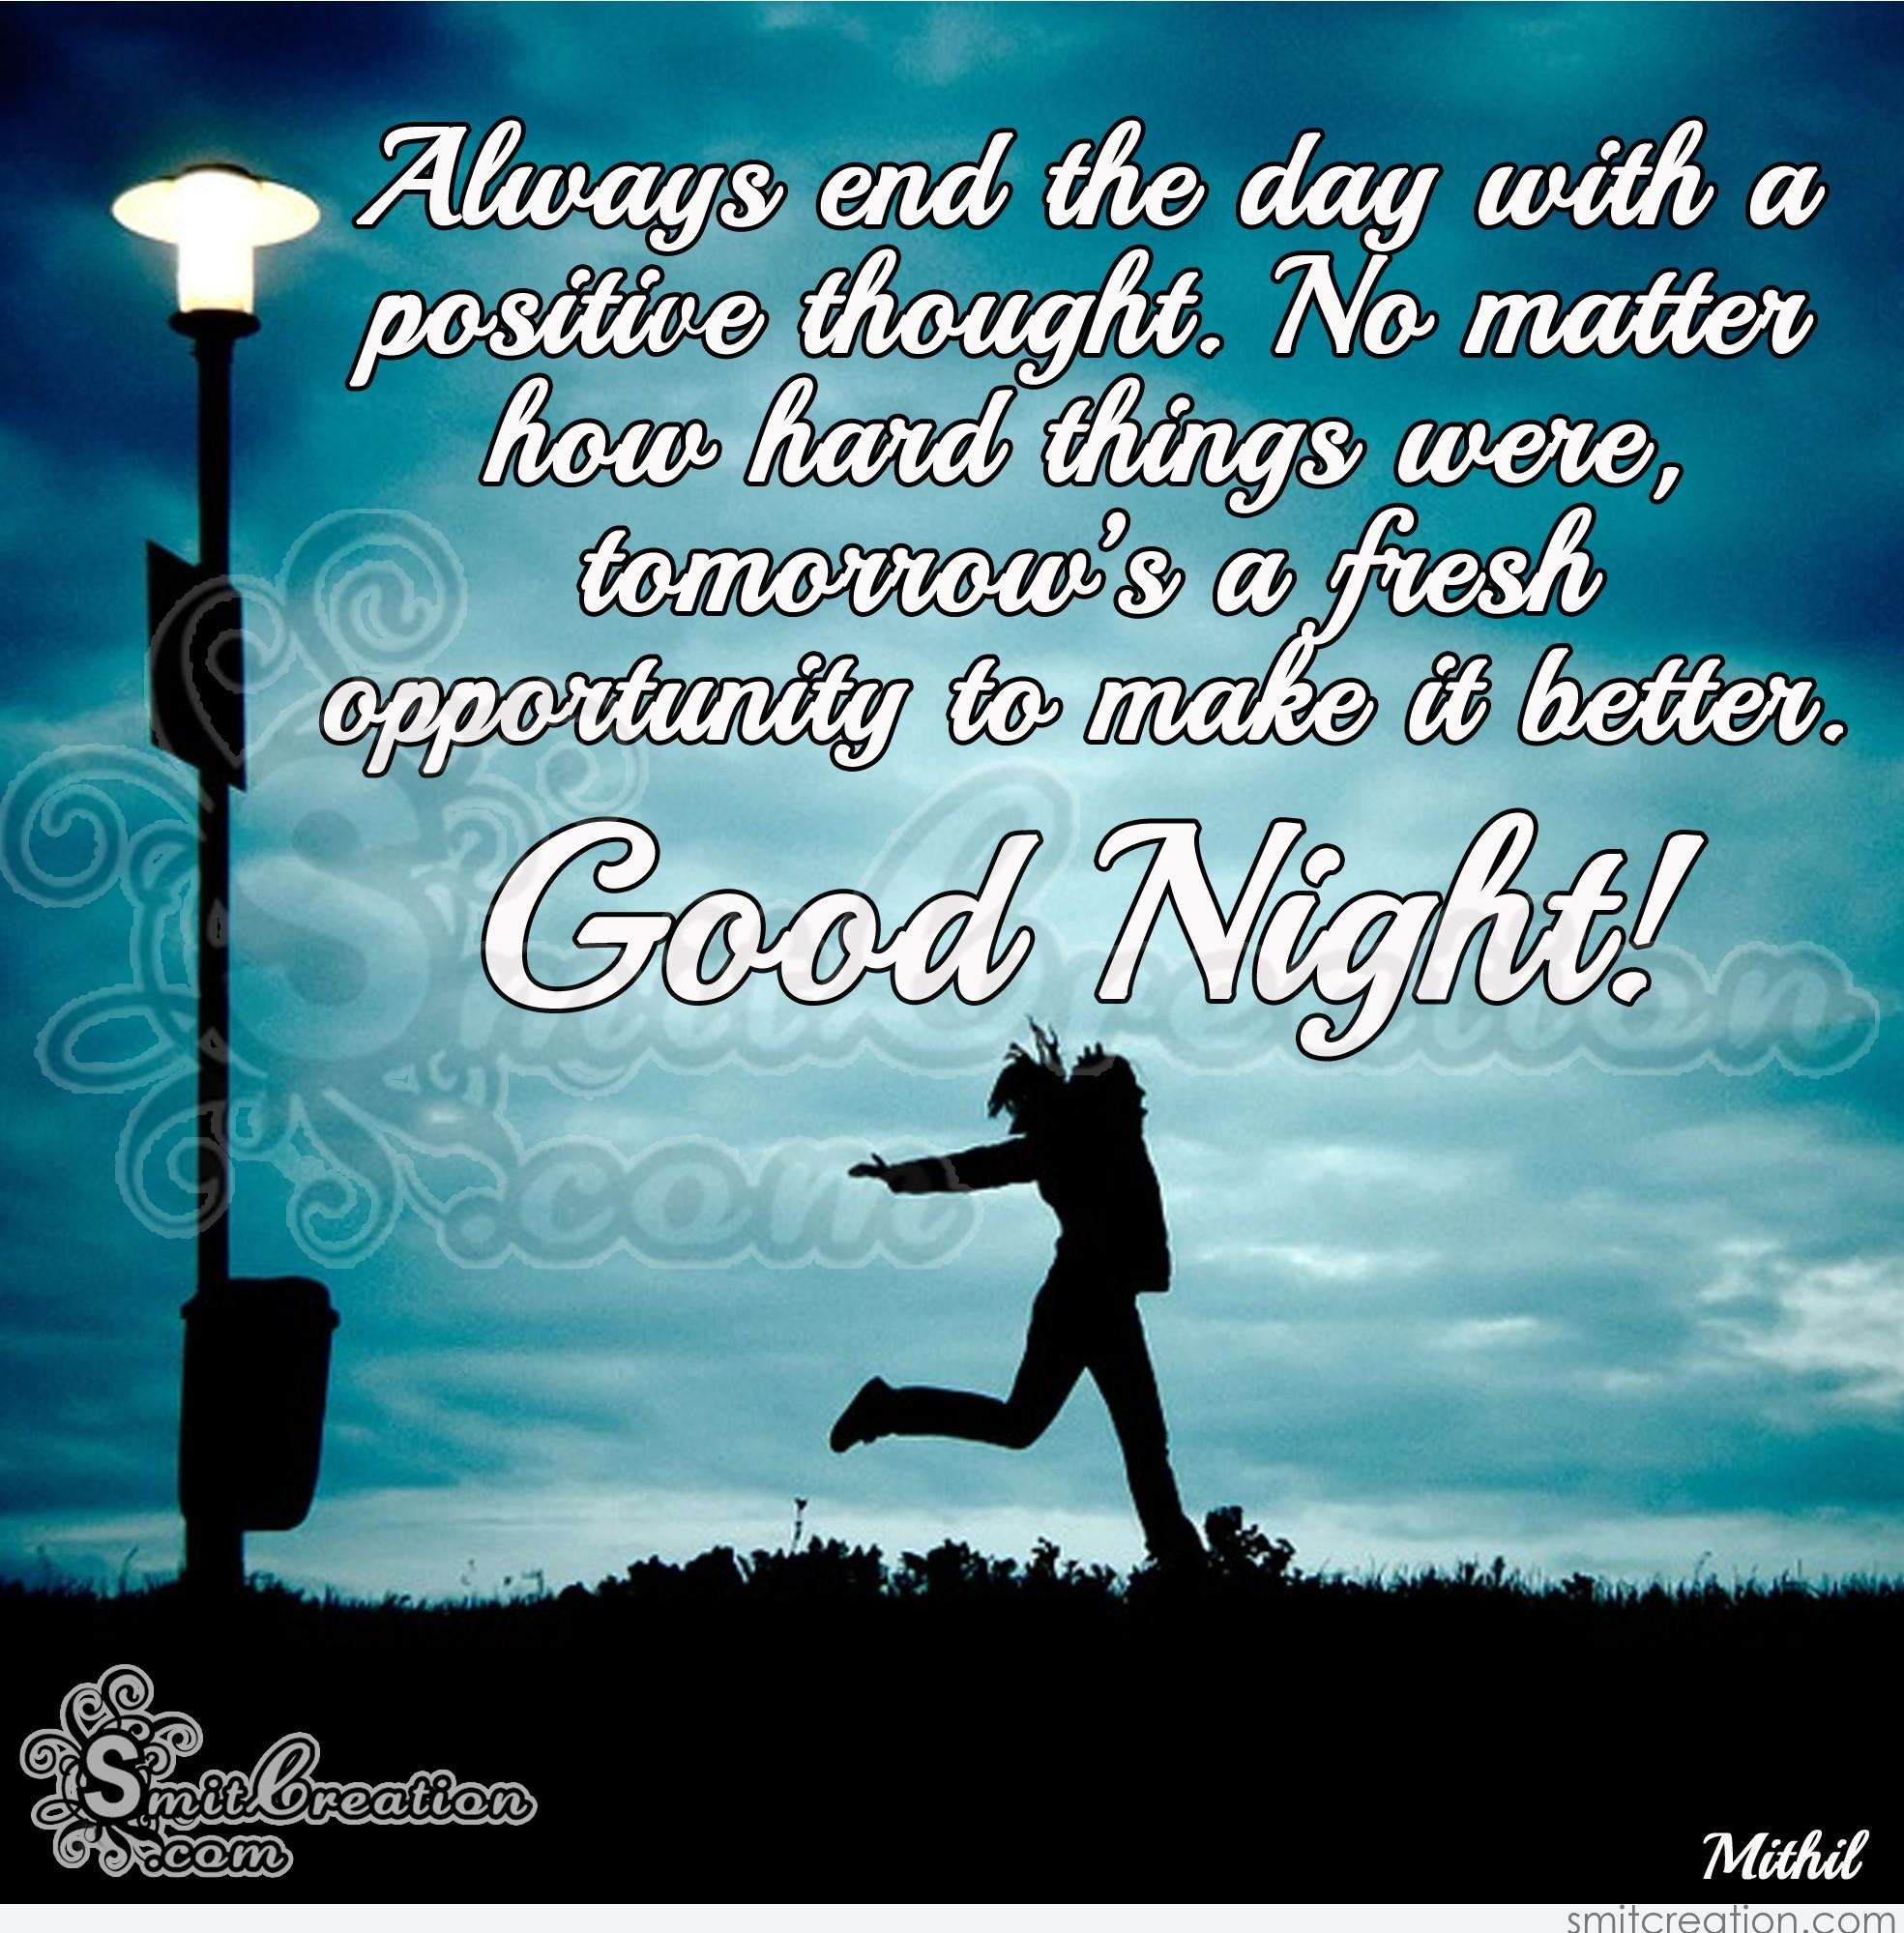 Inspirational Thought For The Day Good Night Inspirational Quotes Pictures And Graphics